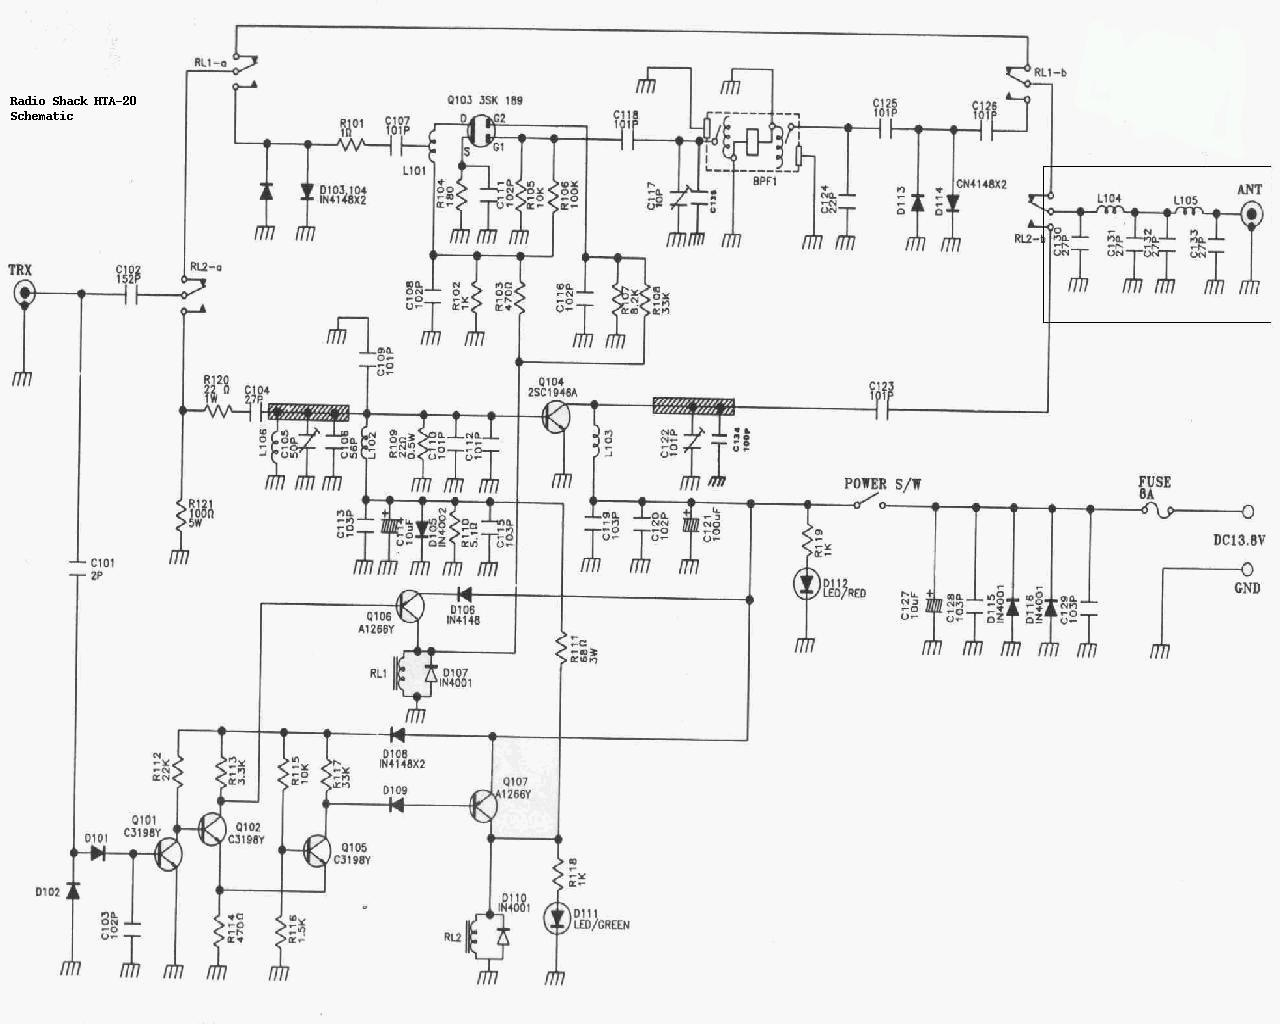 Freedom 20 wiring diagram on congress shall make no law abridging the freedom of speech, or of Double Switch Wiring Diagram Microphone Wiring Diagrams